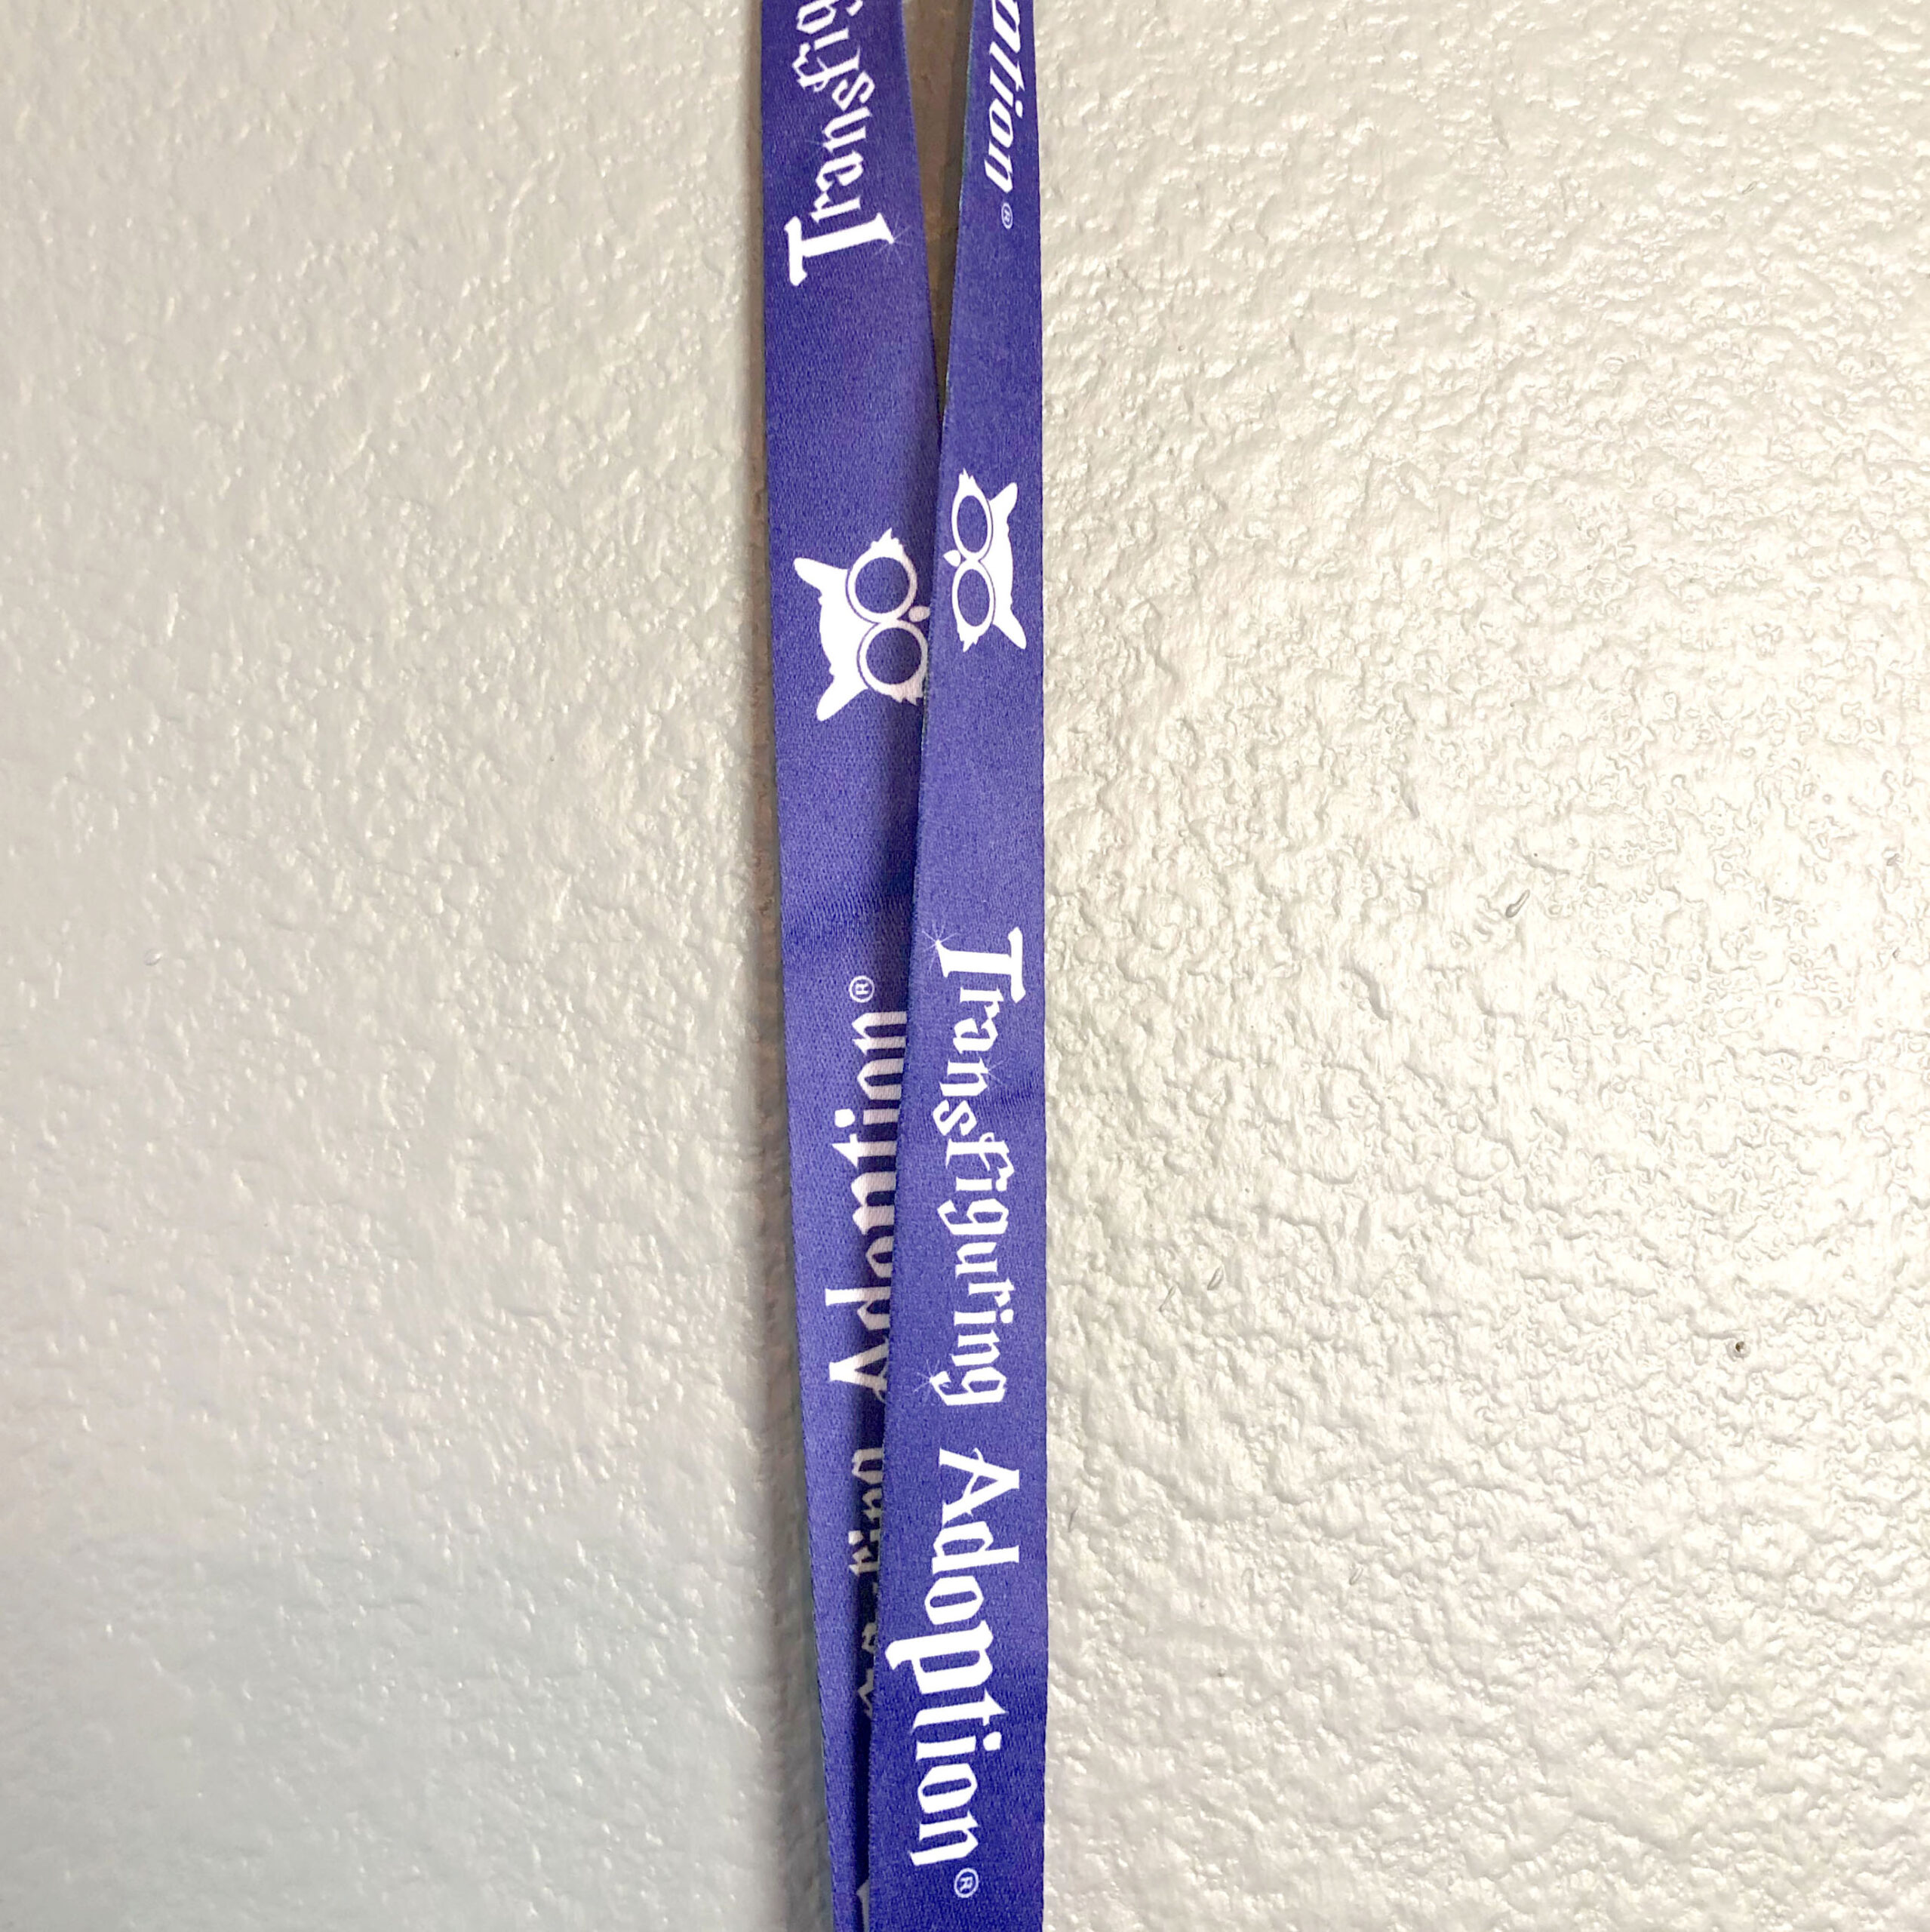 Lanyard with Aluminum Card Holder - Transfiguring Adoption